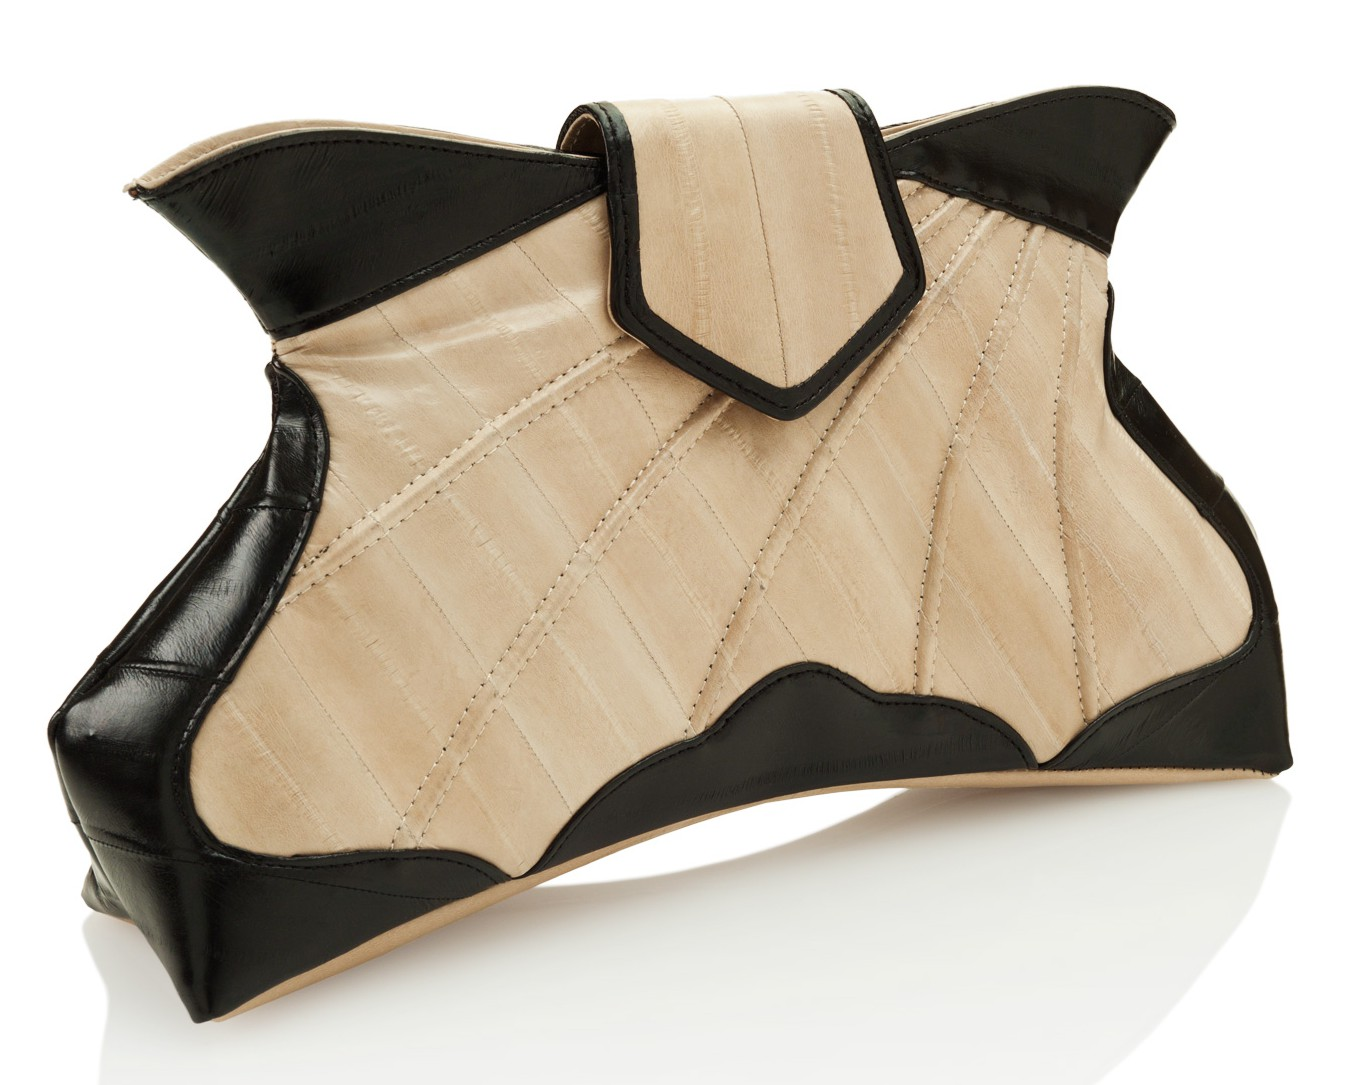 'Butterfly Fever' eel skin clutch by Makki